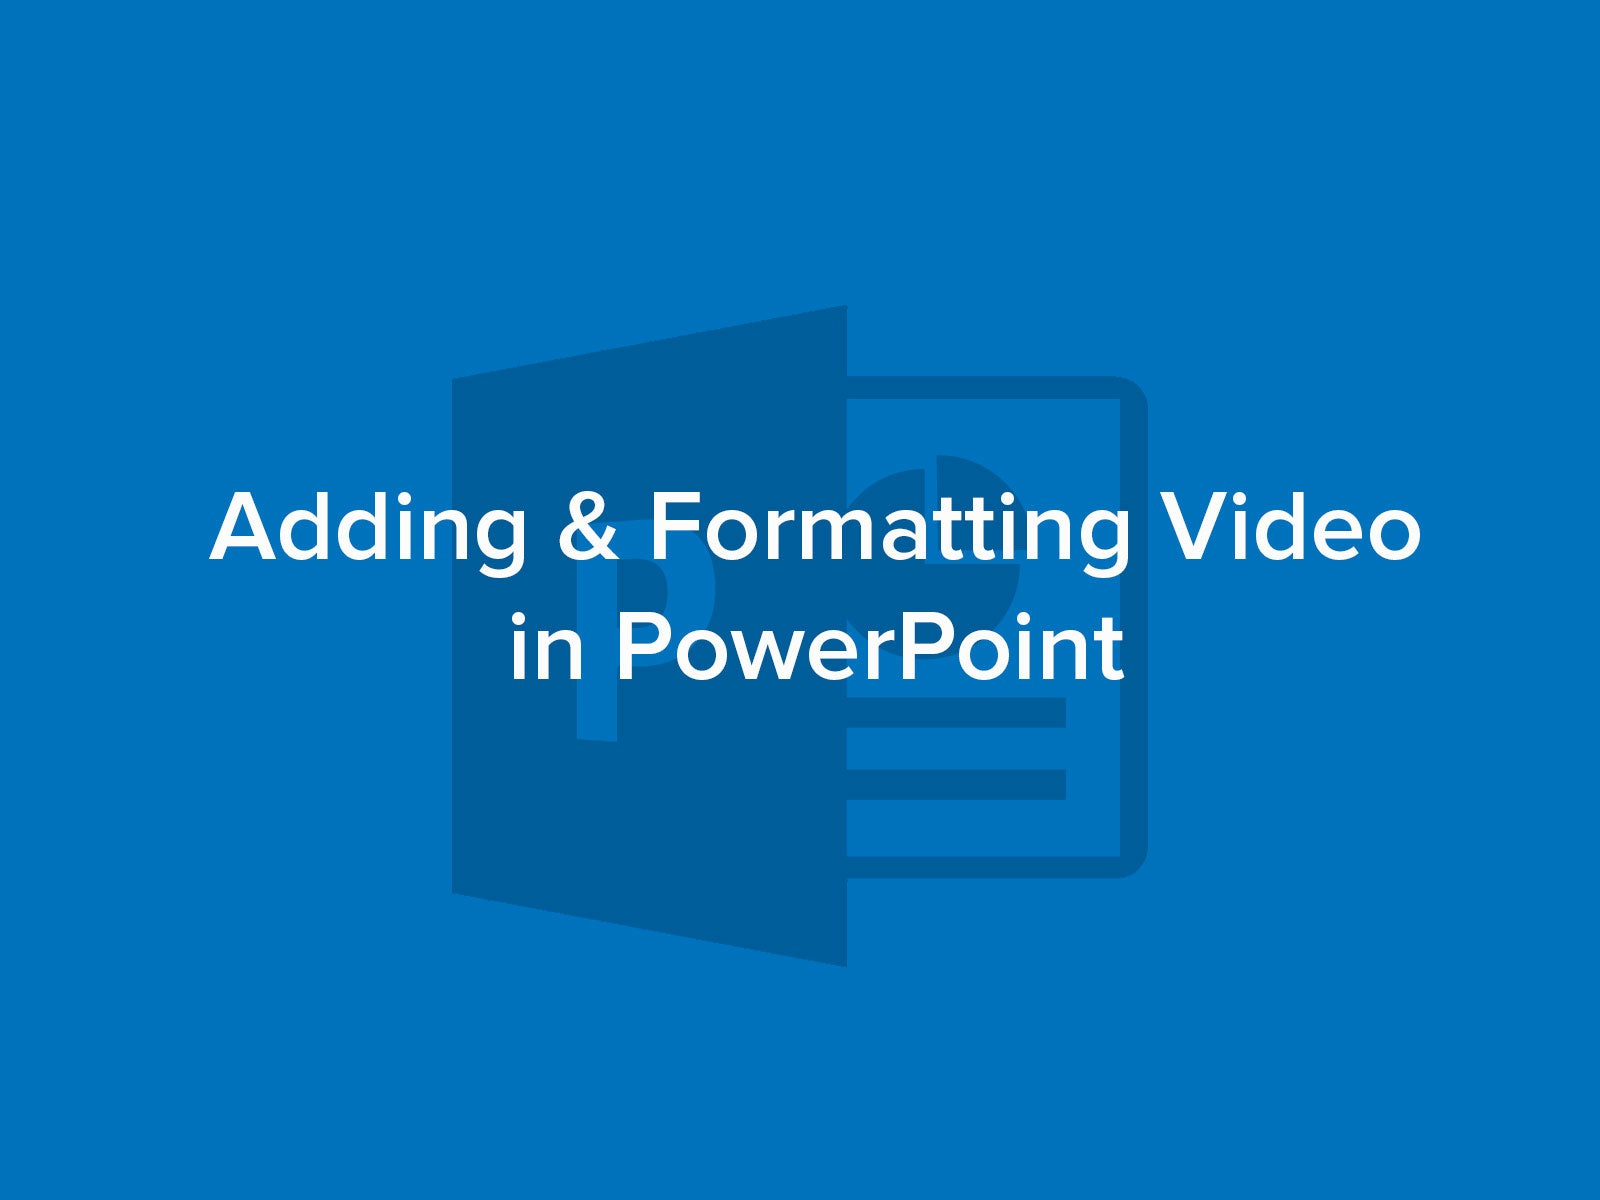 Adding and Formatting Video to PowerPoint Presentations